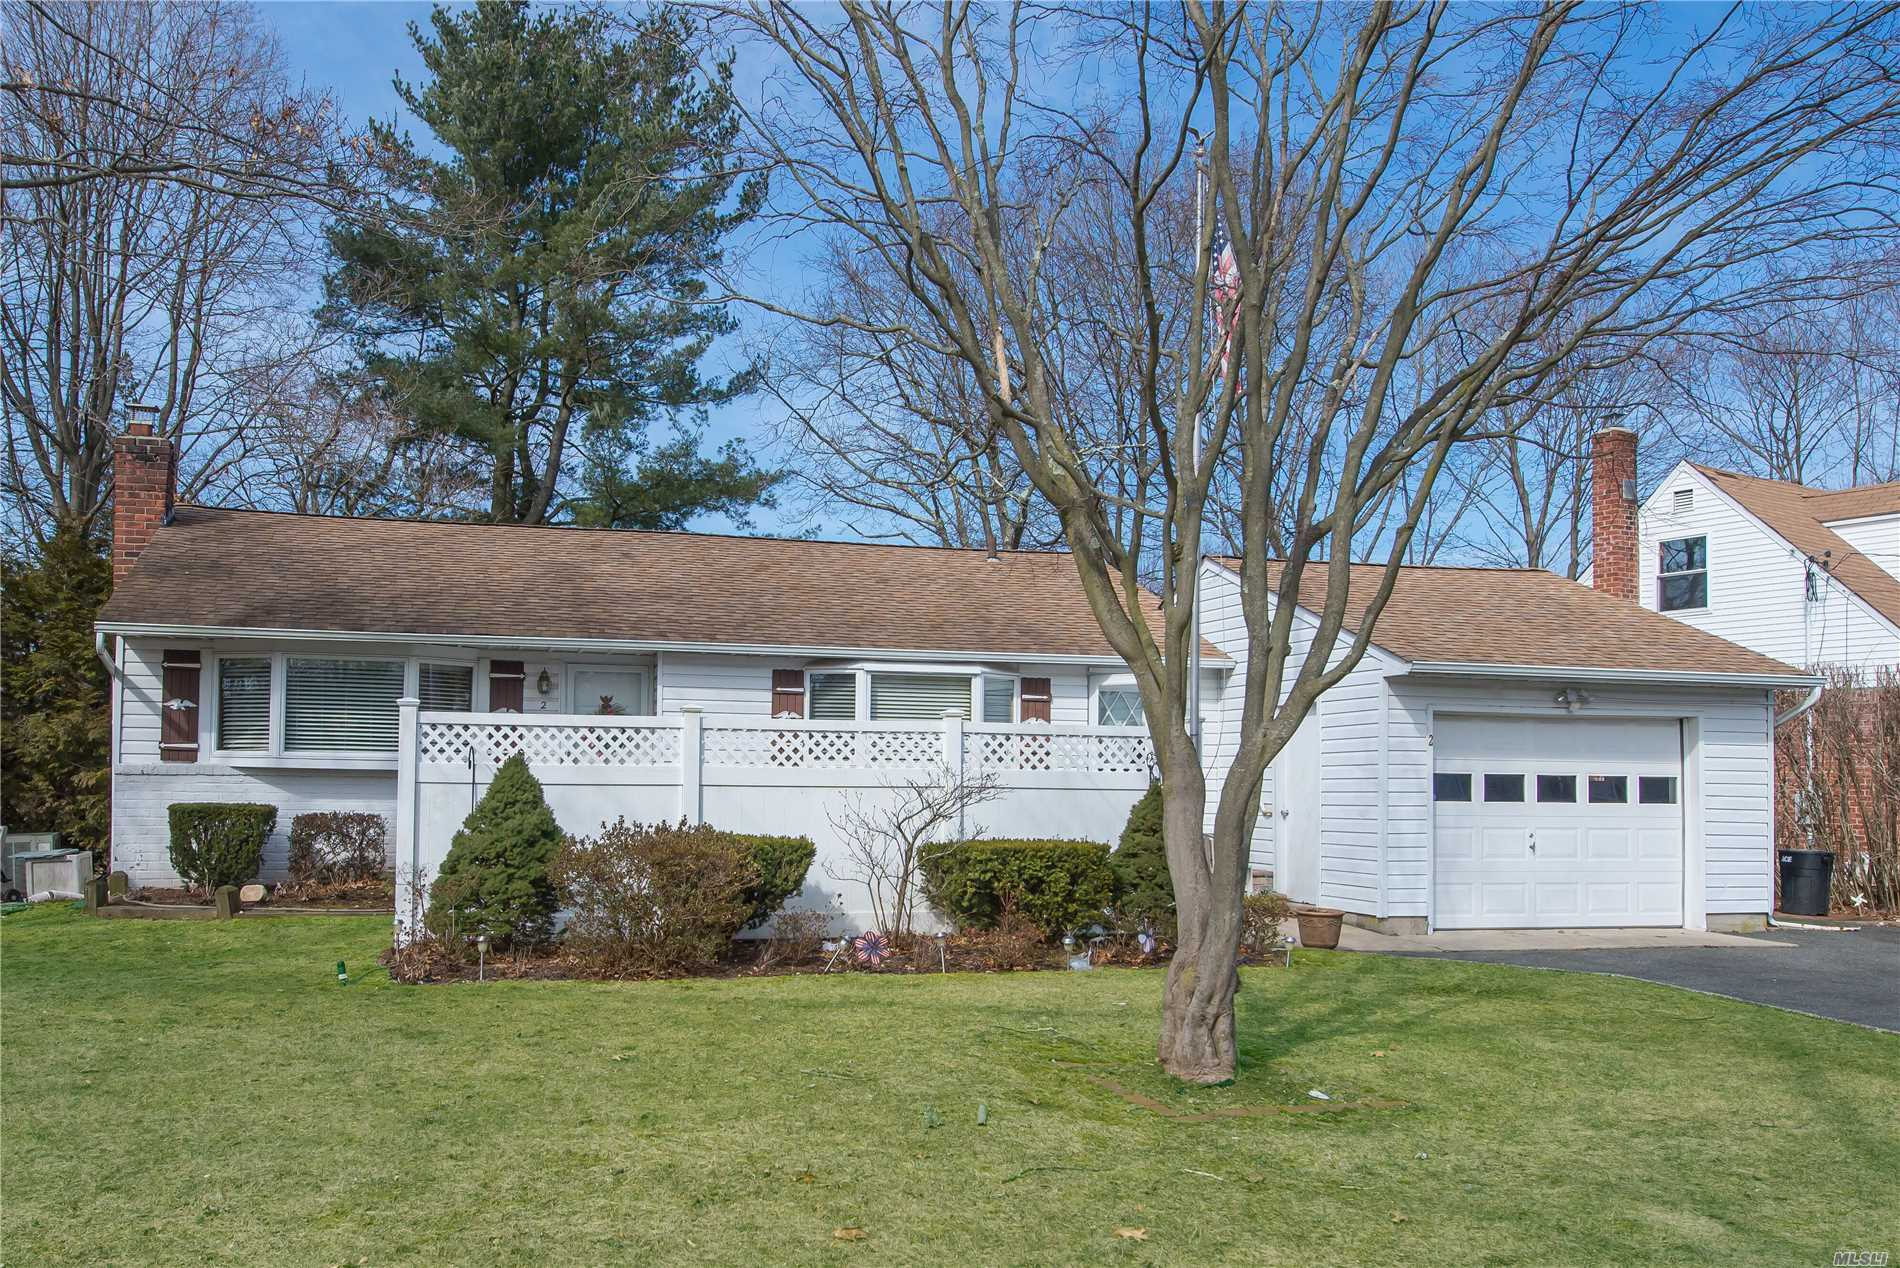 Very nice 3 bedroom ranch on a quiet street, with a 1.5 car garage in the Commack School District. close to shopping, and highways.